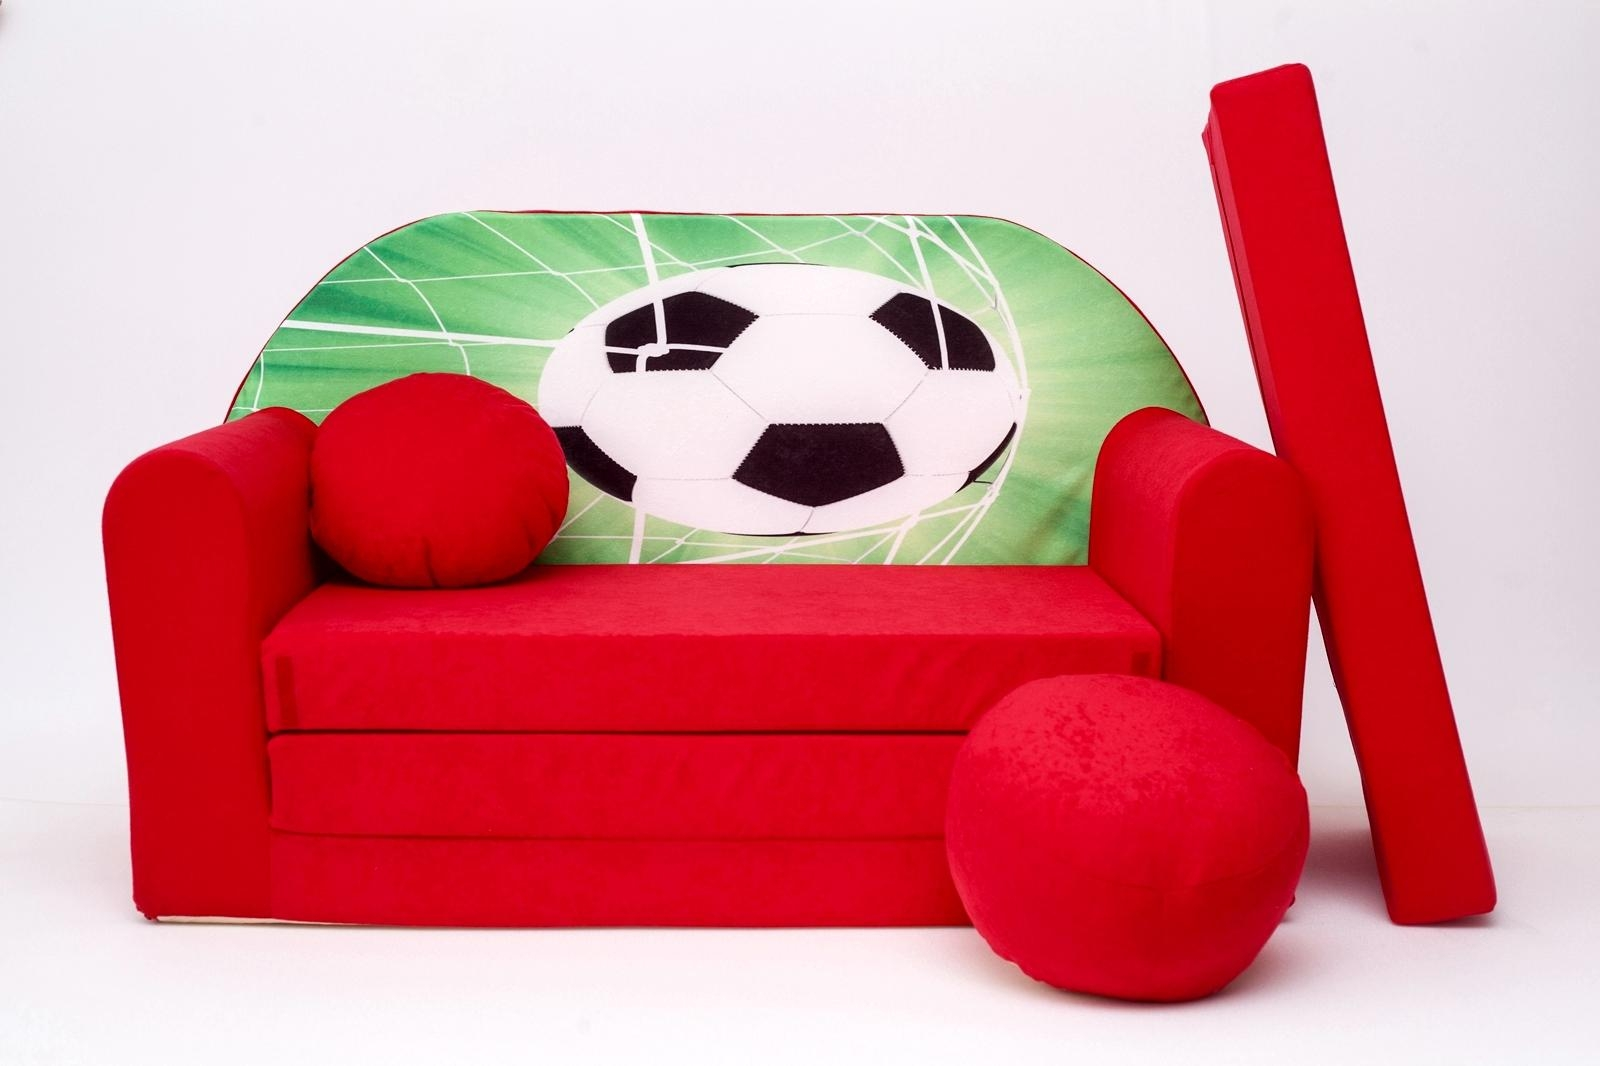 Kids Sofa Bed Childs Furniture + Free Pouffe / Footstool & Pillow Inside Footstool Pouffe Sofa Folding Bed (View 12 of 20)